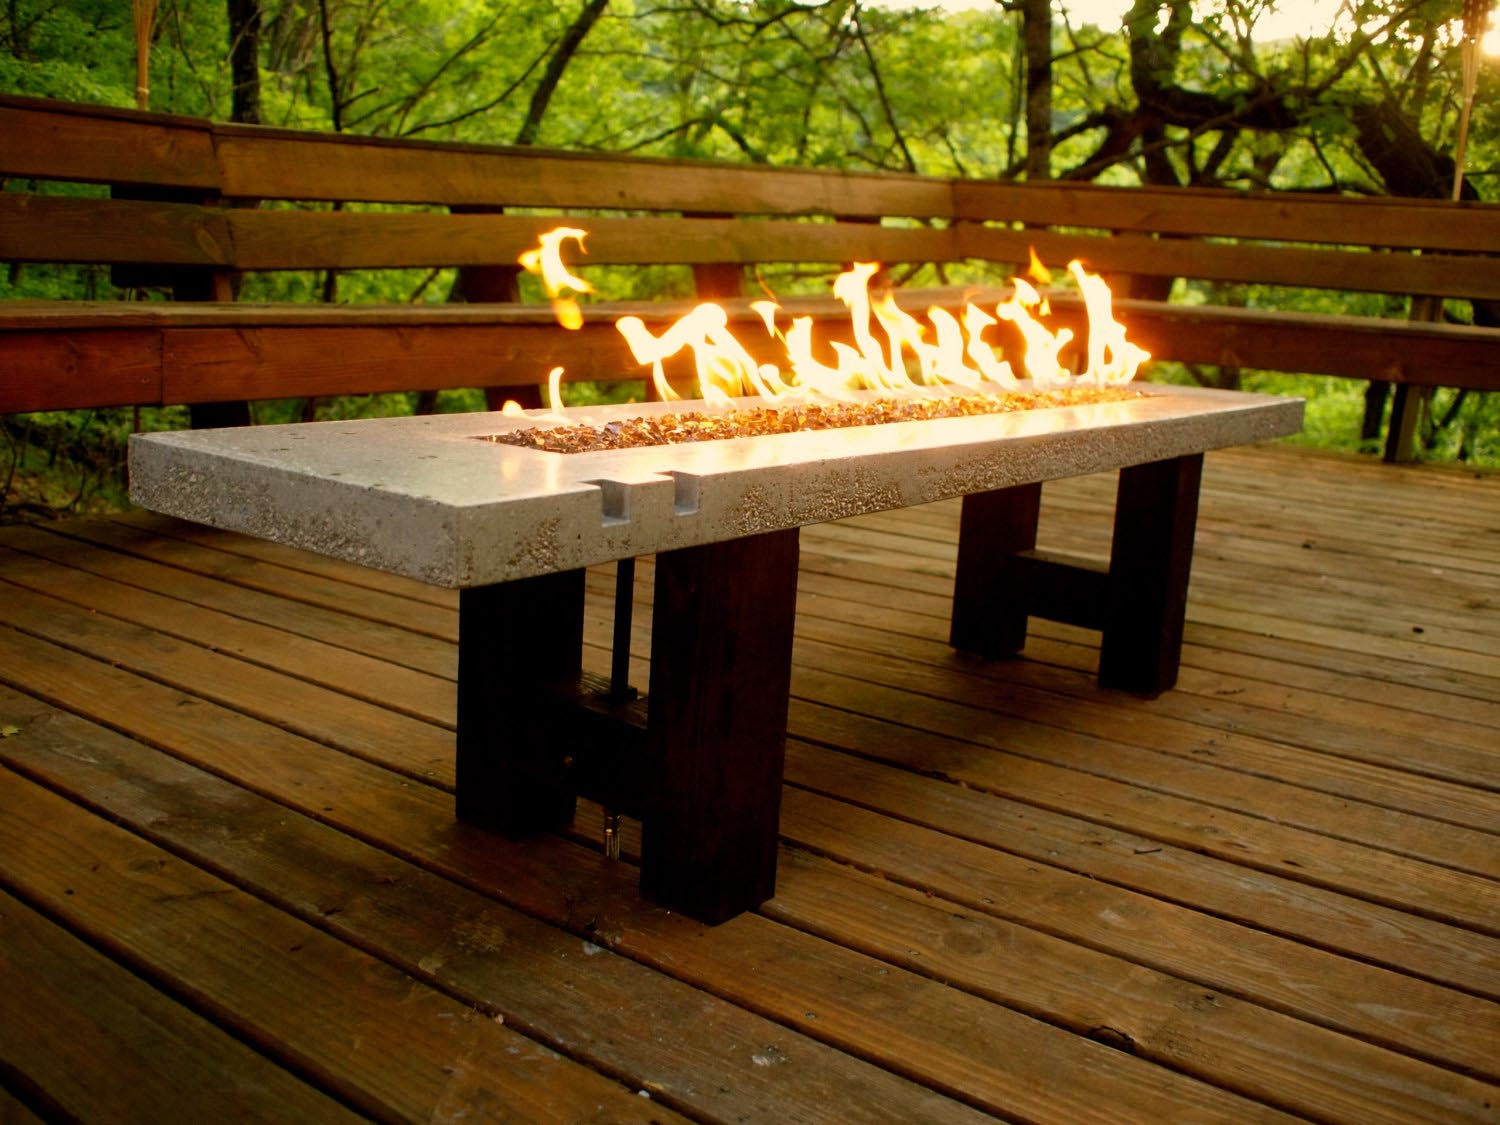 Fire Pit Chairs And Other Equipment For Barbecue Fire